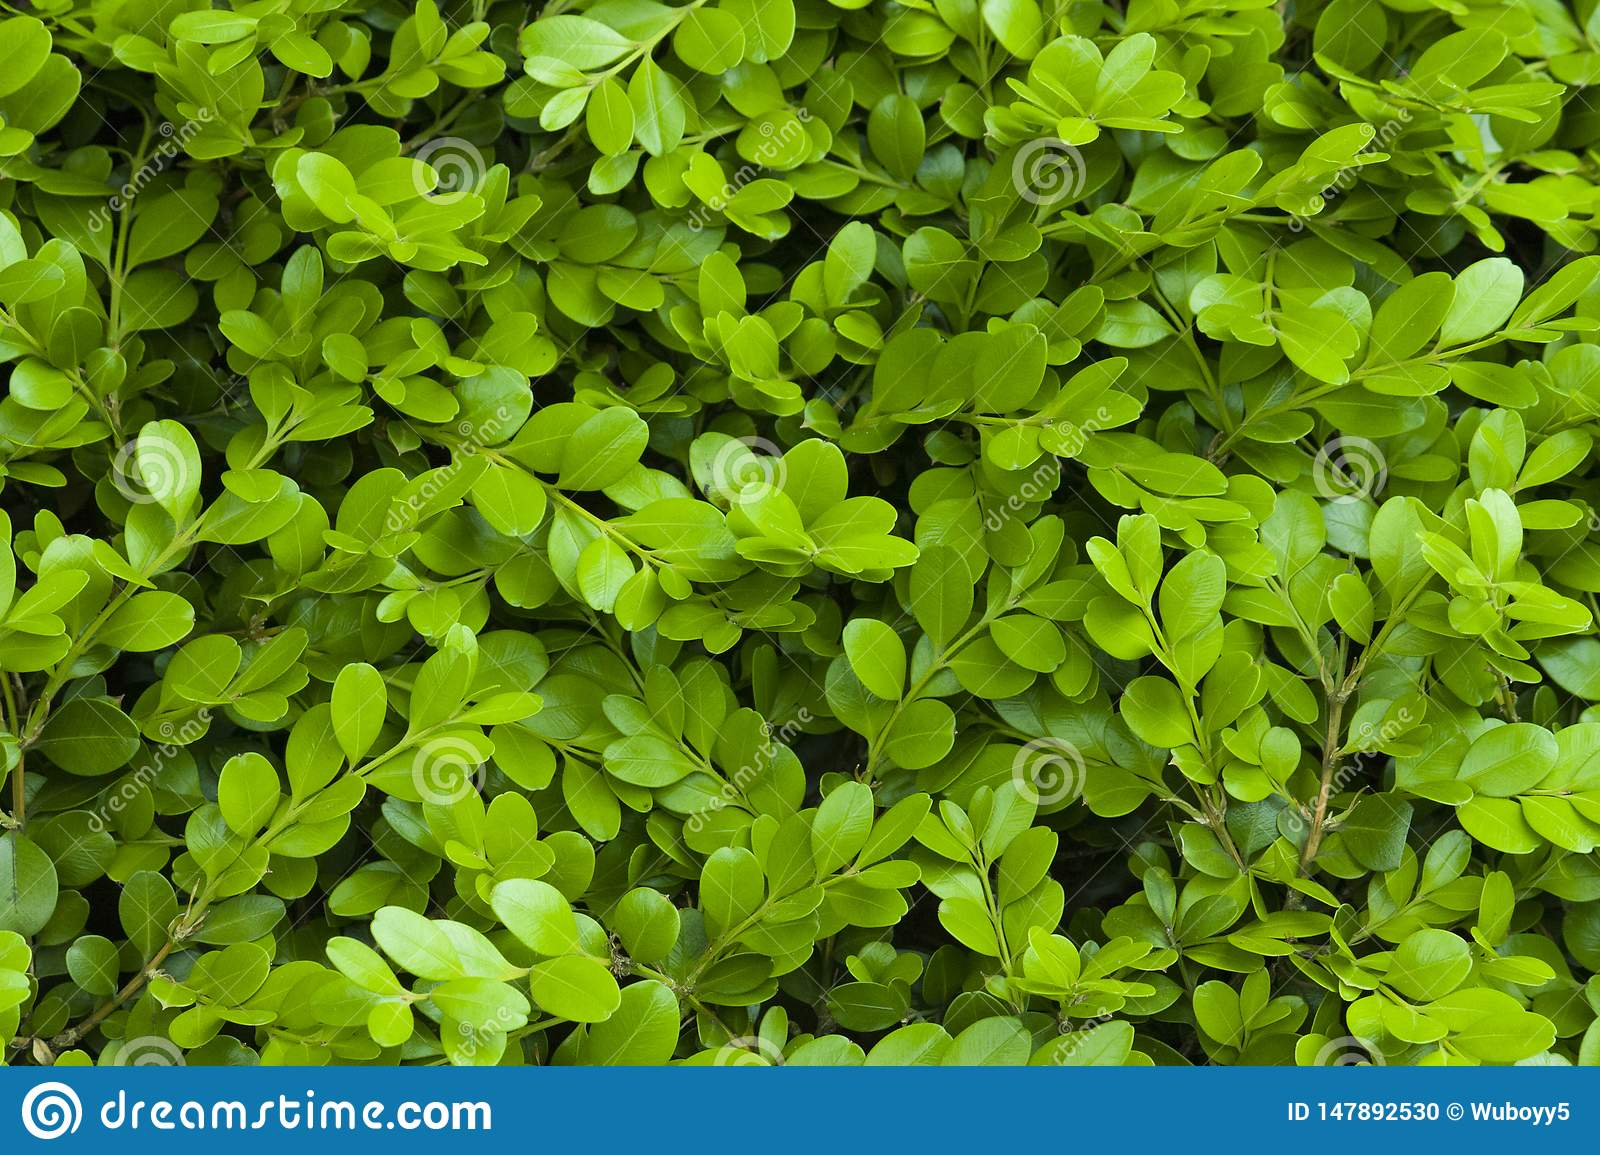 Green leaf material, texture ,background